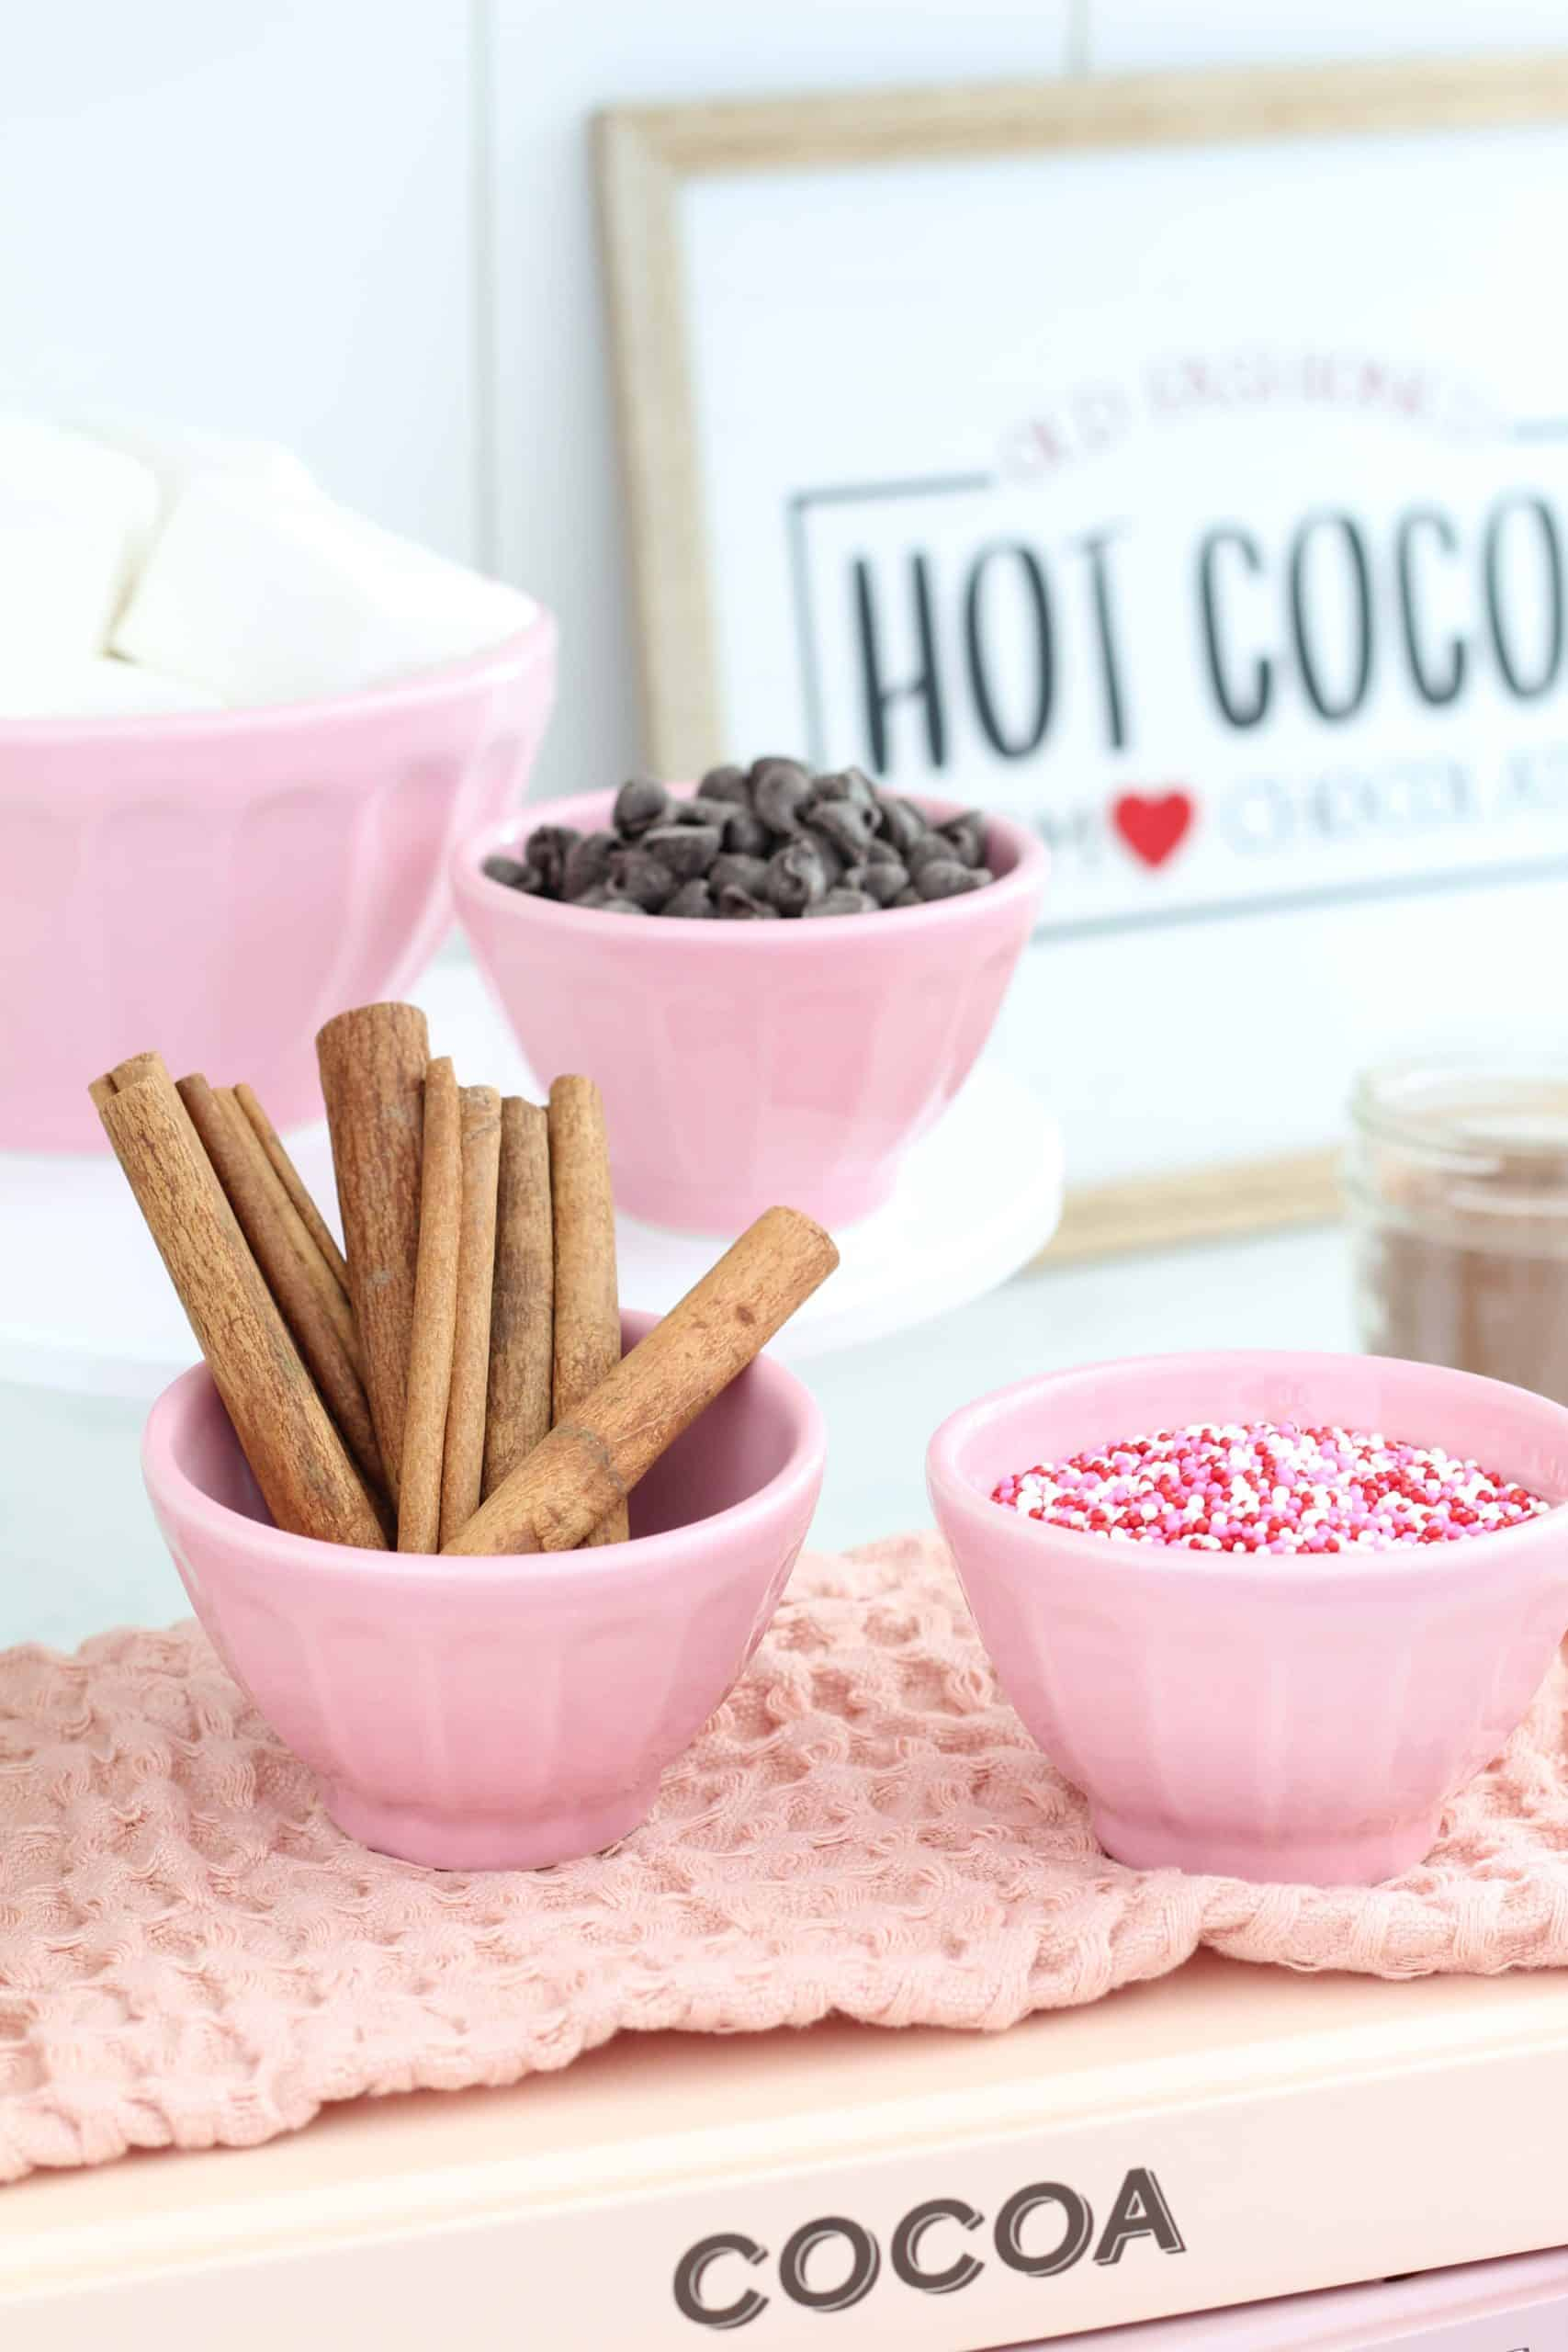 pink anthropologie bowls, cinnamon sticks, dark chocolate chips, pink sprinkles, homemade marshmallows